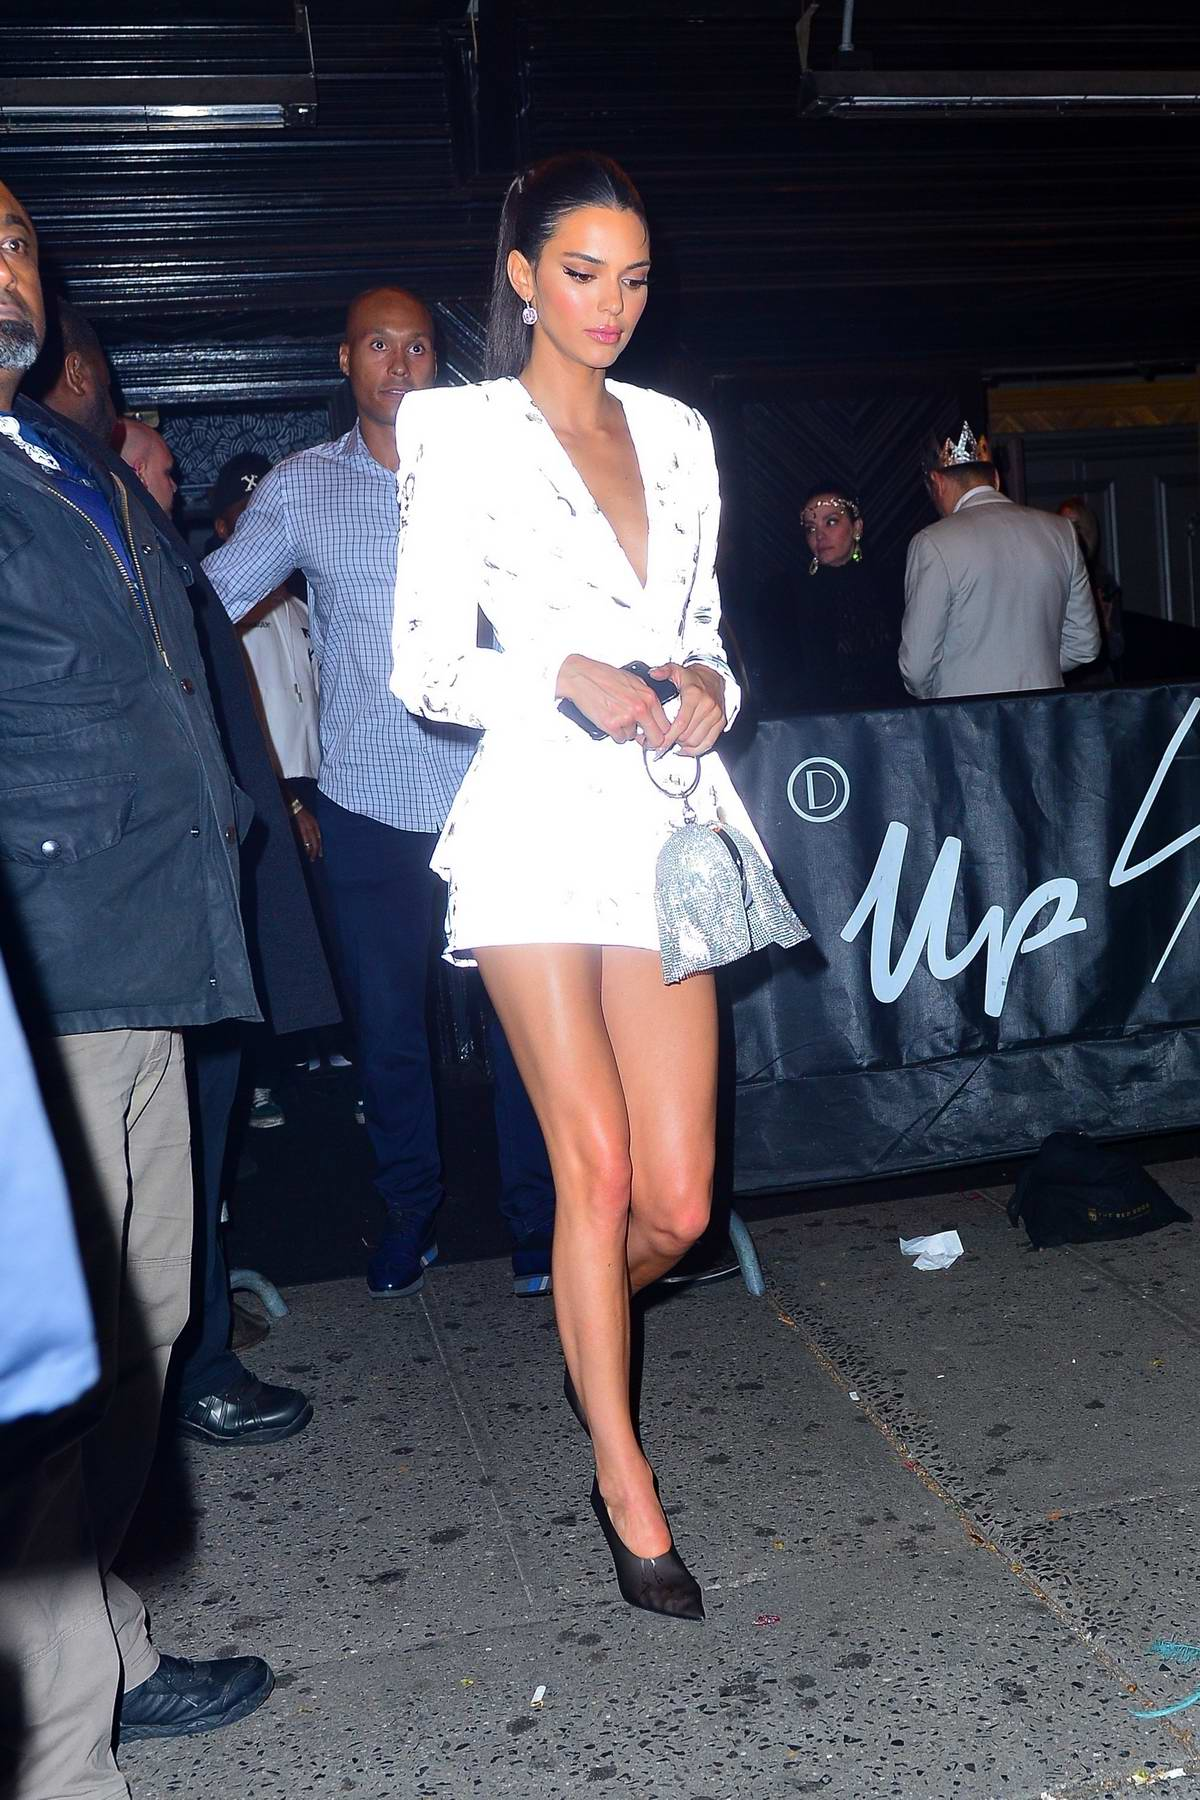 Kendall Jenner glows in a short white outfit as she heads to the 2019 Met Gala after-party in New York City